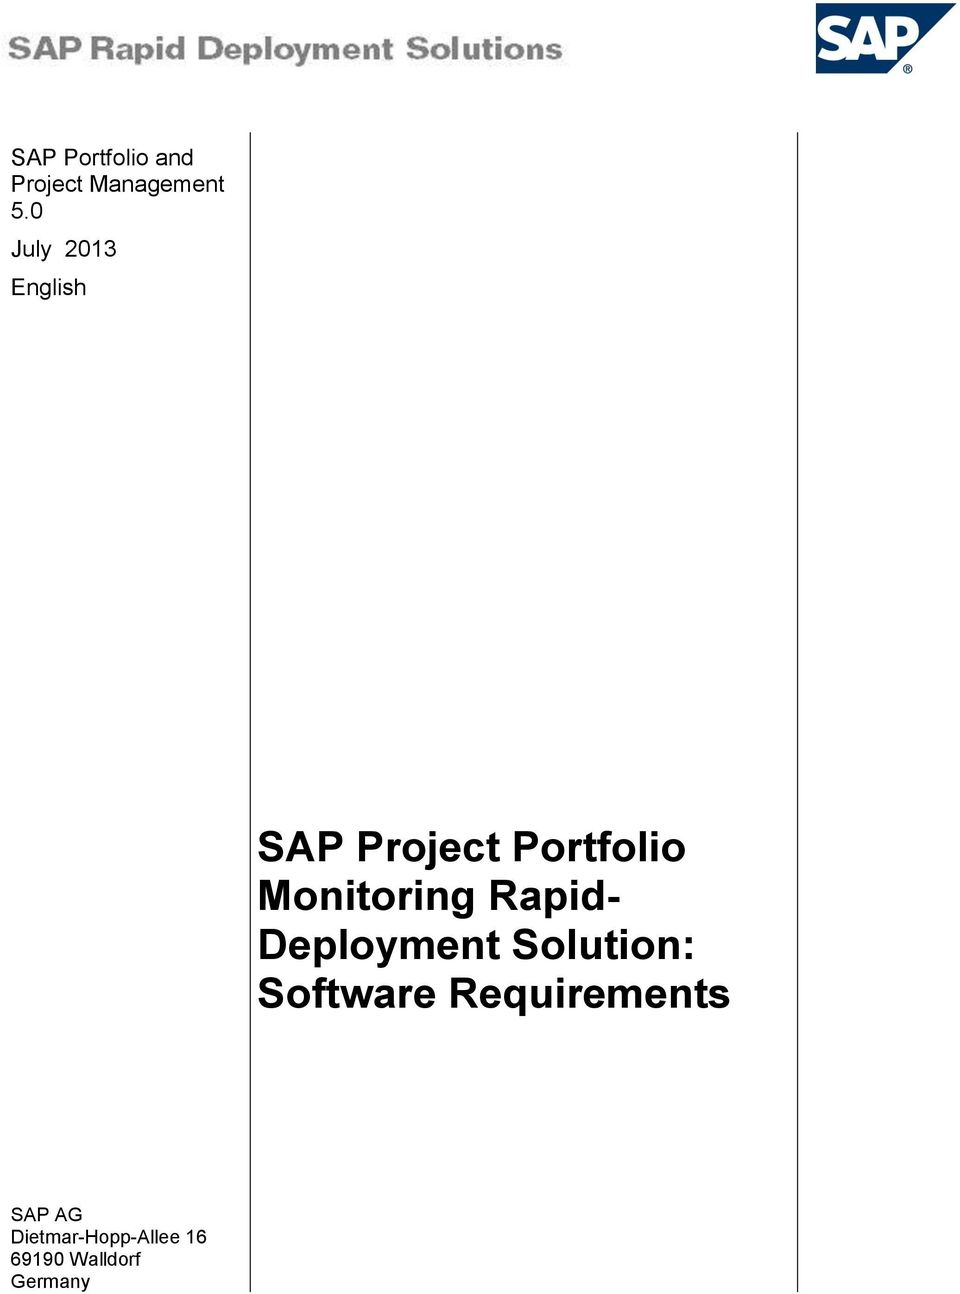 Monitoring Rapid- Deployment Solution: SAP